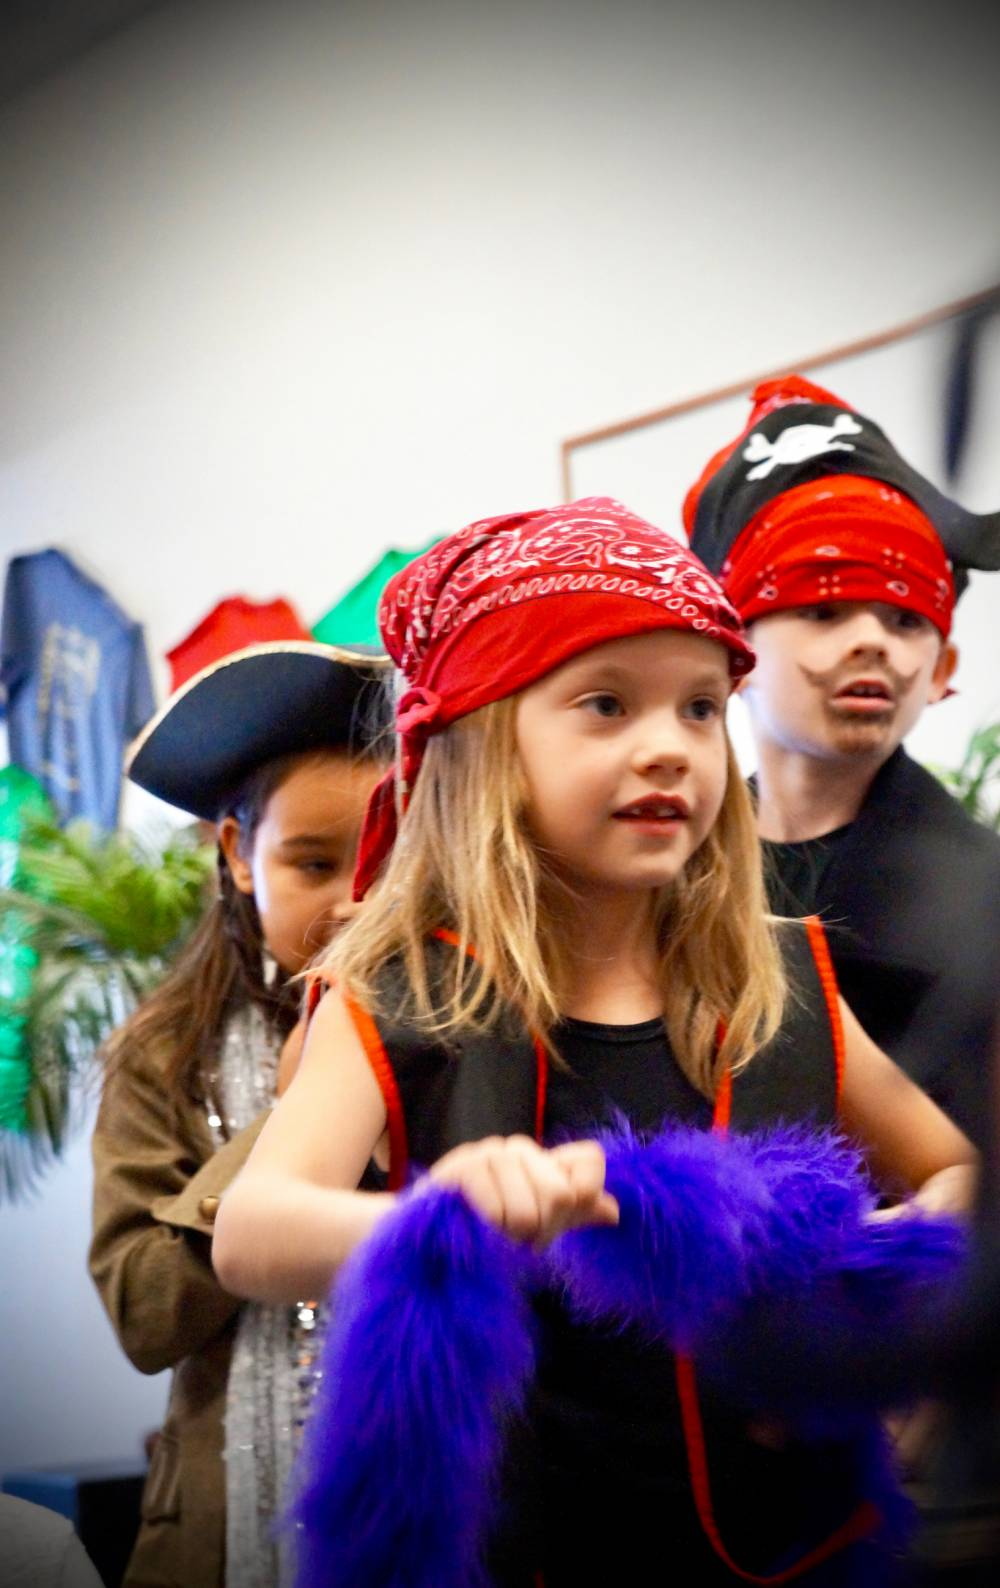 TOP ARIZONA SUMMER CAMP: Imagination Theatre Camp is a Top Summer Camp located in Mesa Arizona offering many fun and enriching camp programs.